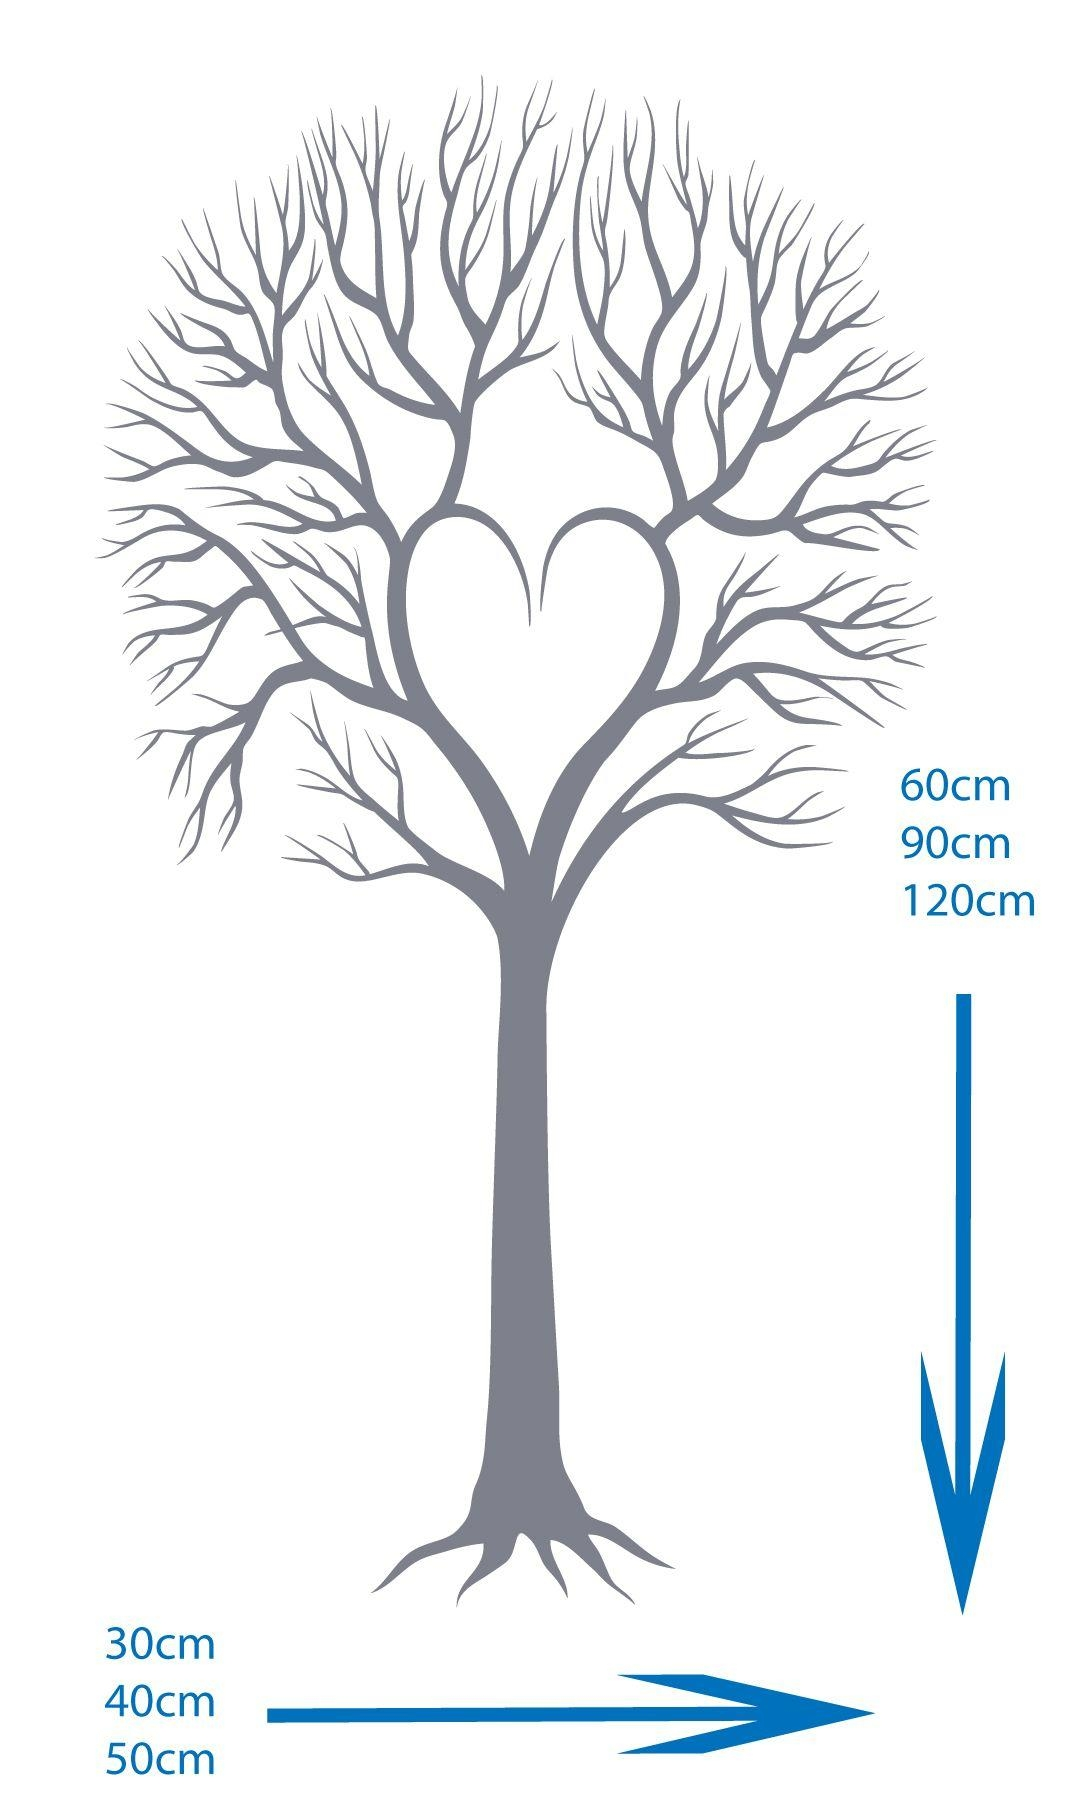 Twiggy Loveheart Tree – Vinyl Wall Art Decal Sticker For Twiggy Vinyl Wall Art (Image 9 of 20)